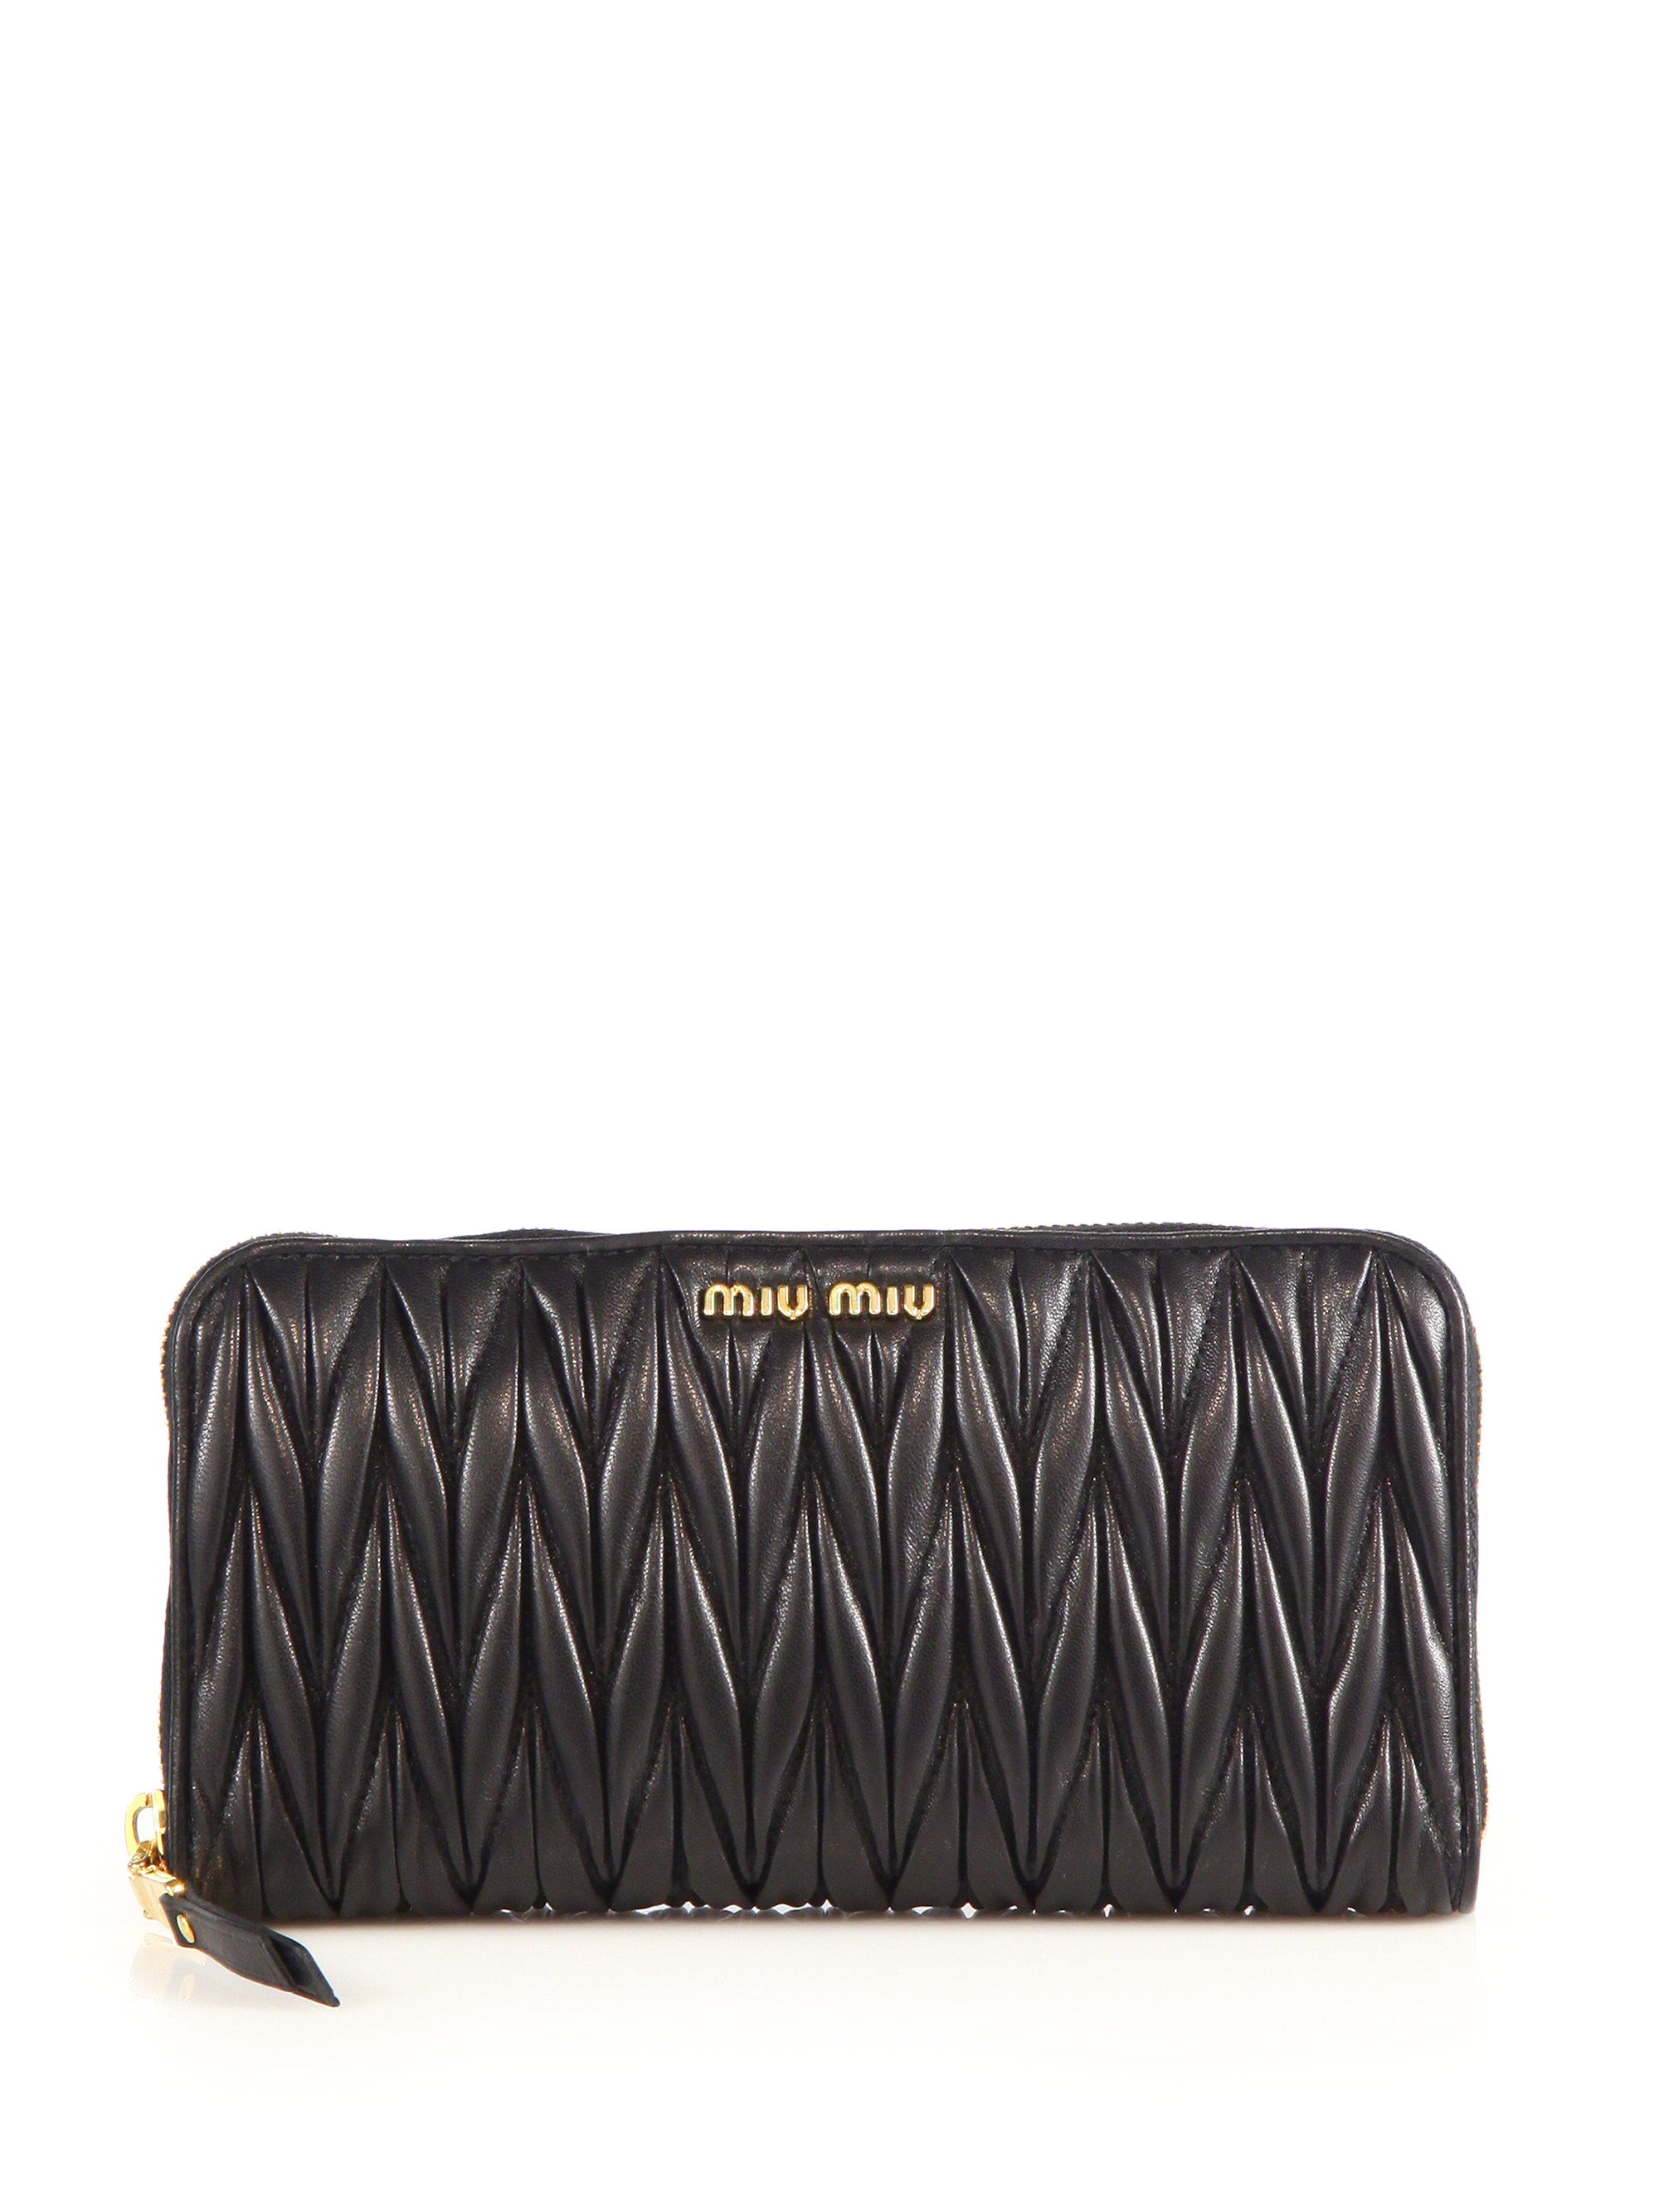 839dadf05ced3488 also Milan Stylish Luxury Apartments You Will Want To See likewise Miu Miu Matelasse Leather Zip Continental Wallet Black in addition Pantone Color Of The Year 2016 moreover How To Divide Studio Apartment Room. on interior design color trends 2015